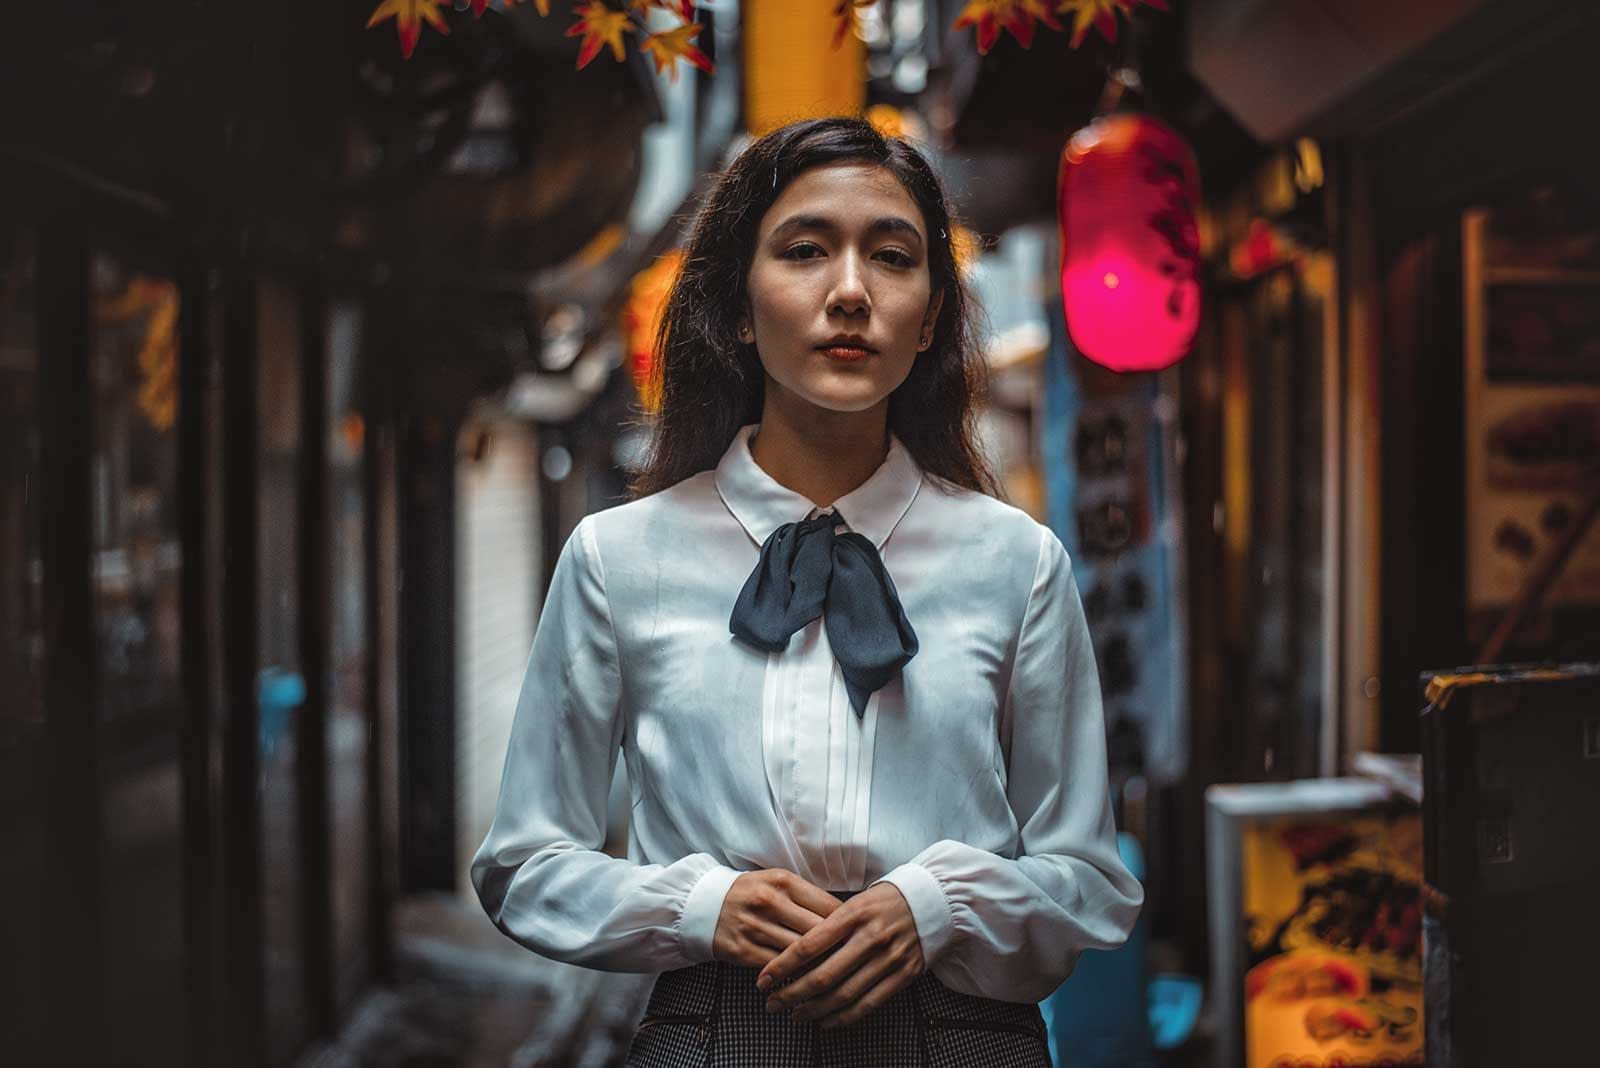 Portrait of a woman in a Japanese town before edit